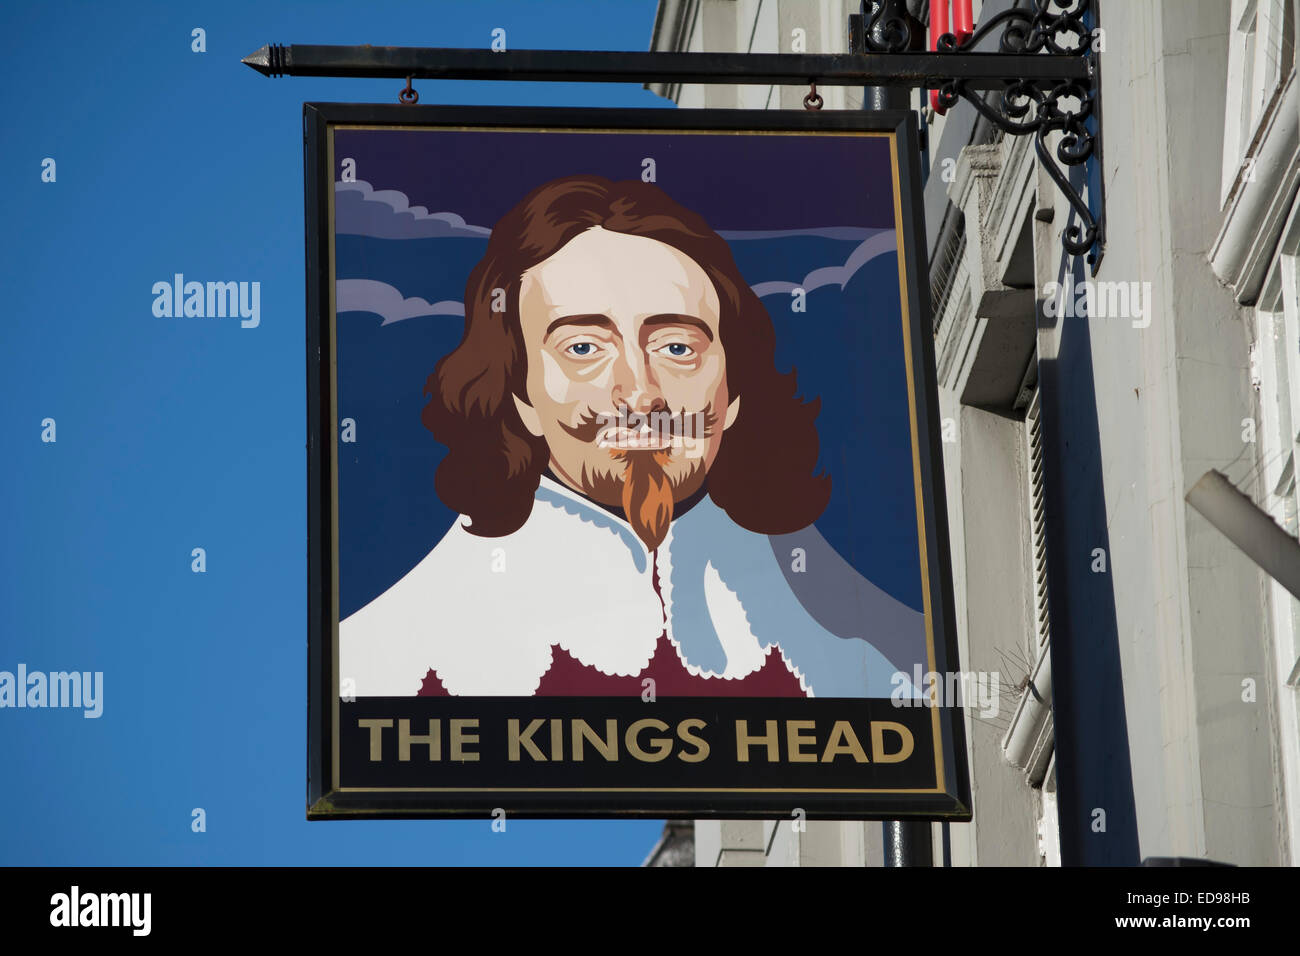 pub sign for the kings head, acton, london, england, showing image of charles I - Stock Image